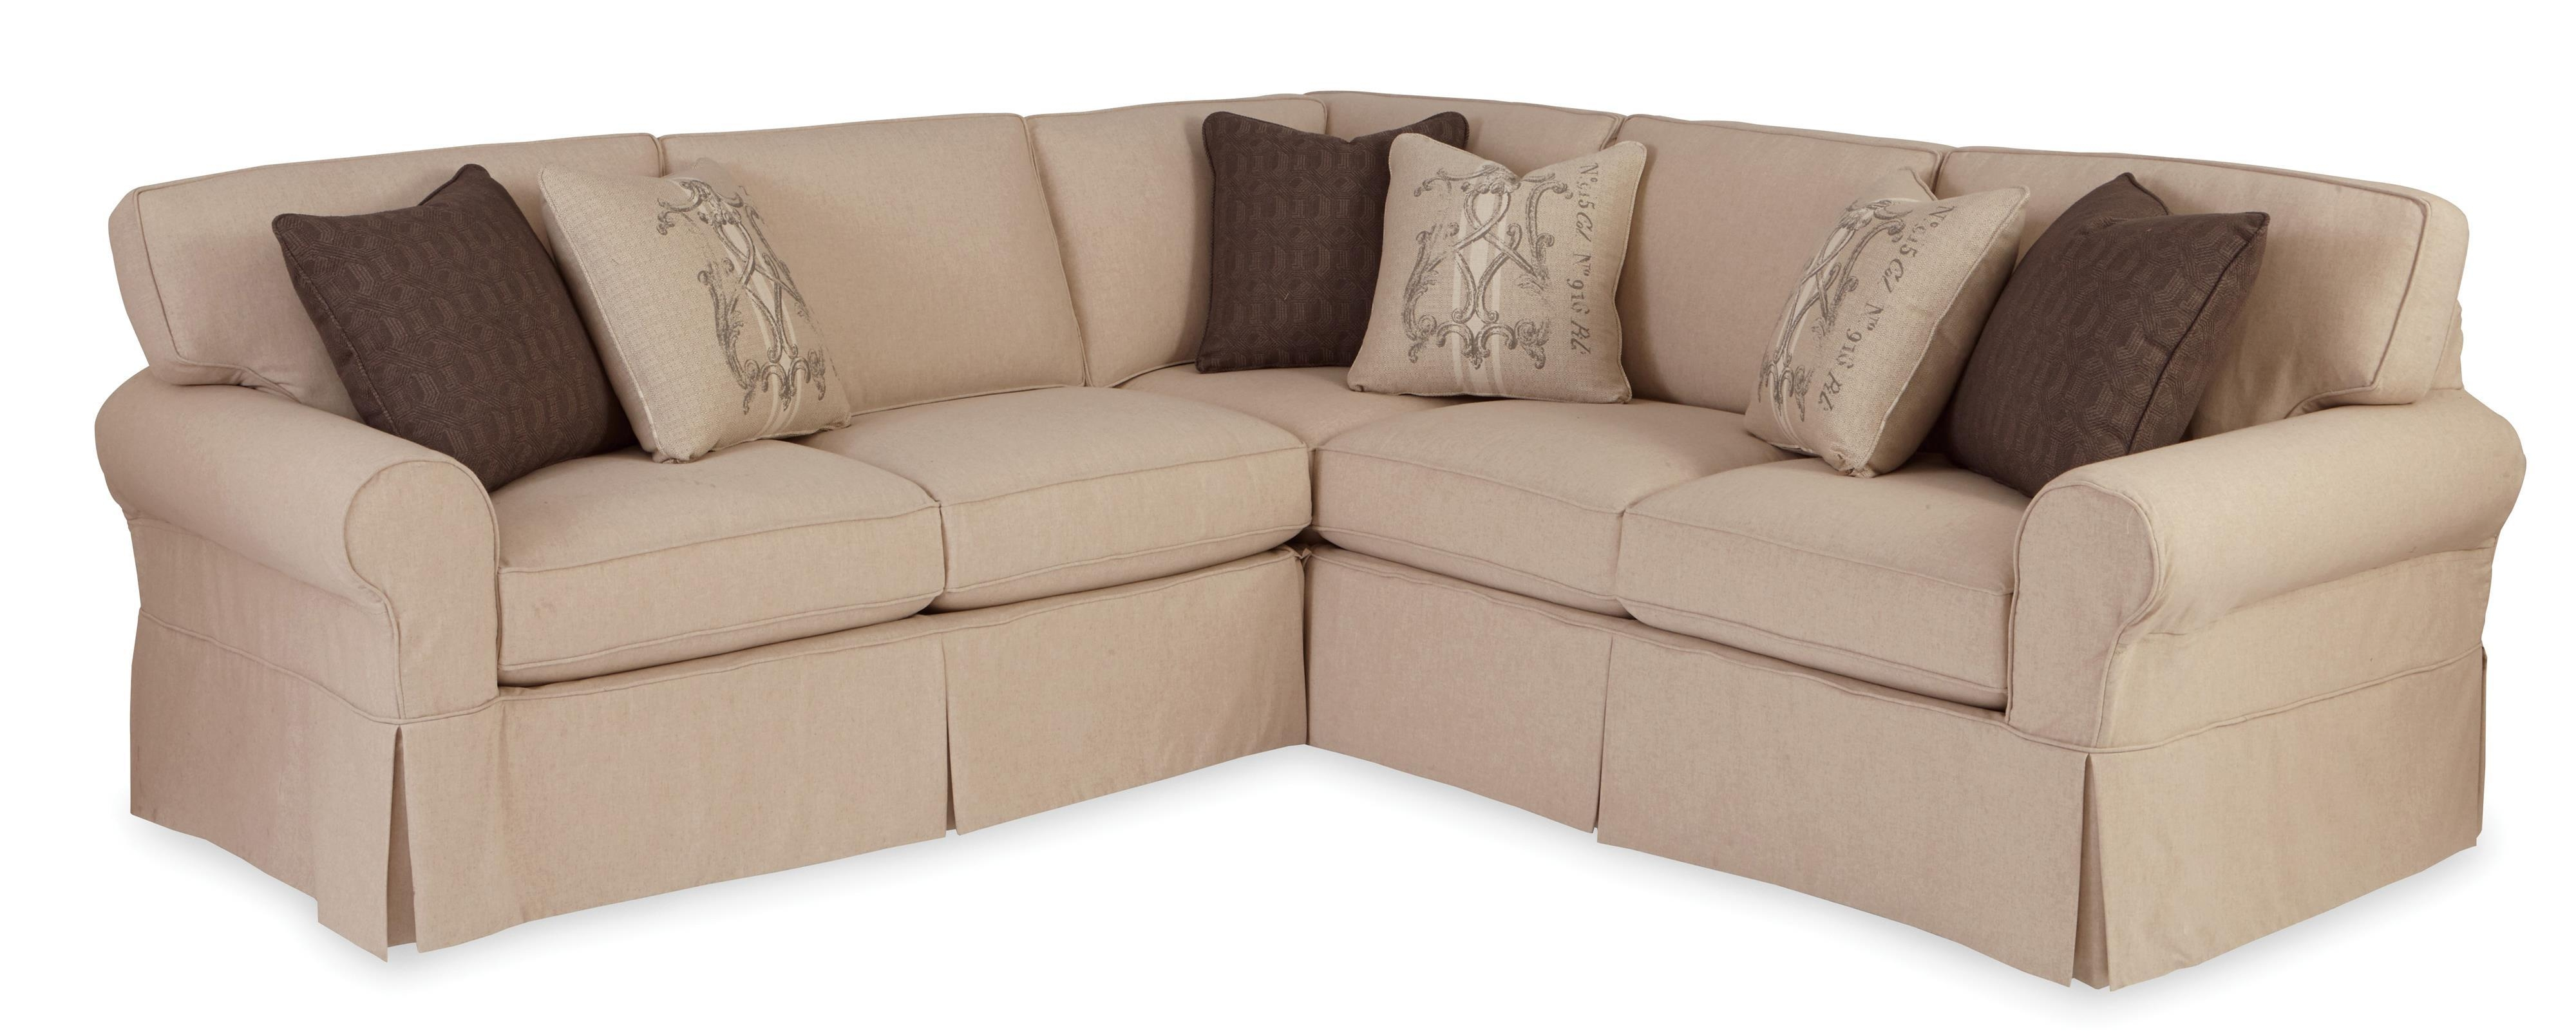 used sofa carlyle beds outlet 20 best collection of sectionals ideas